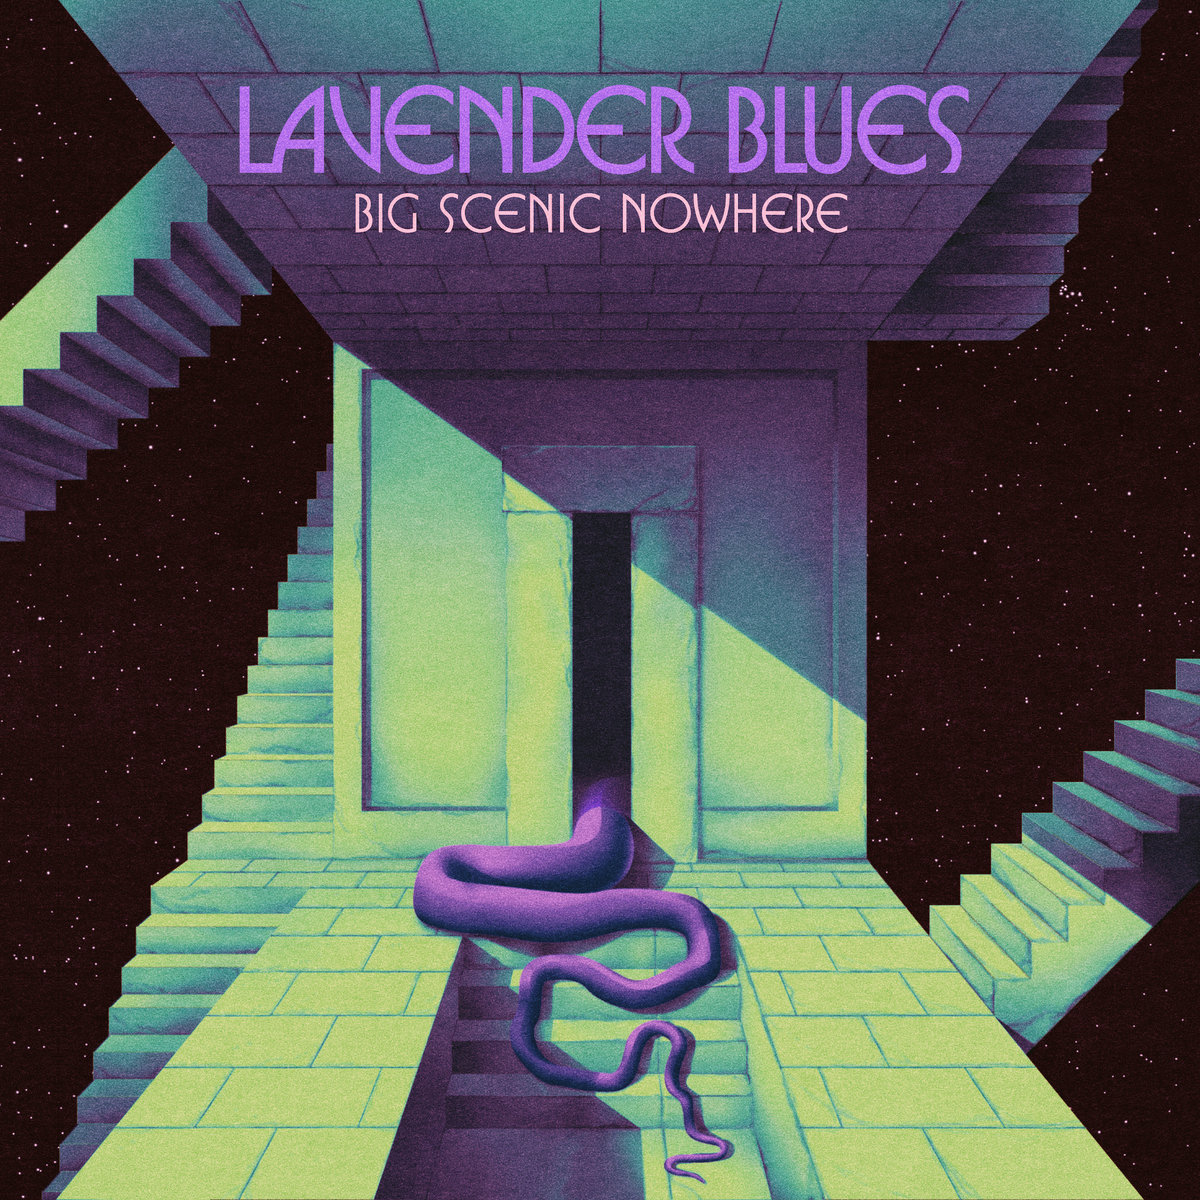 Reseña: BIG SCENIC NOWHERE.- 'Lavender blues'